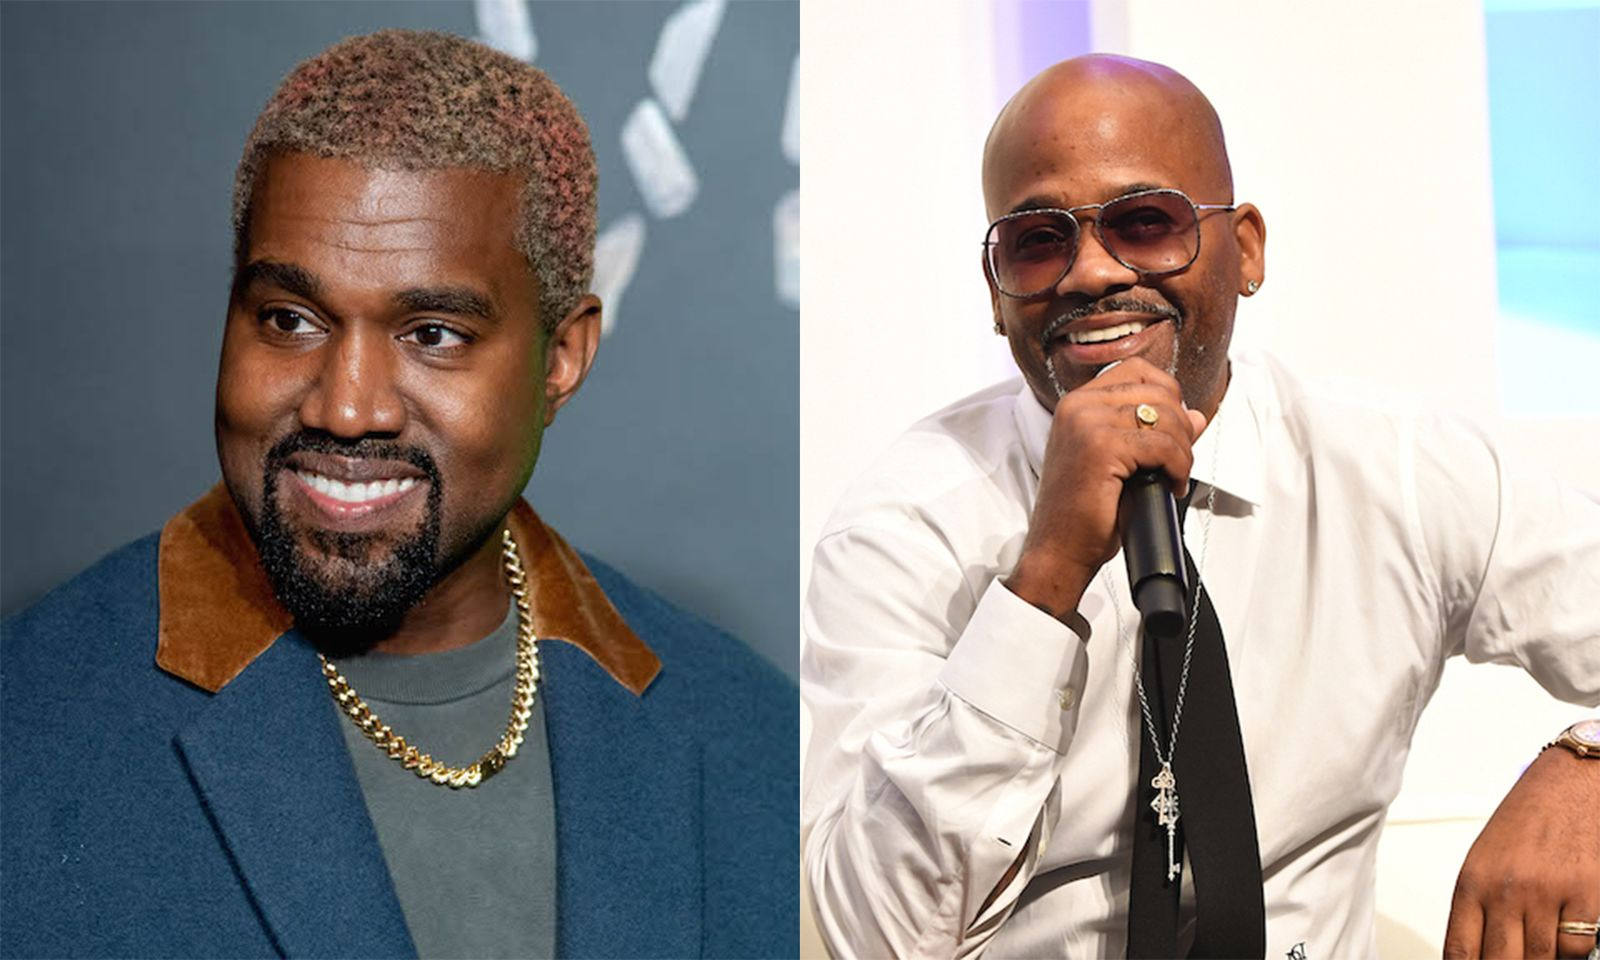 kanye west freestyle dame dash studio damon dash